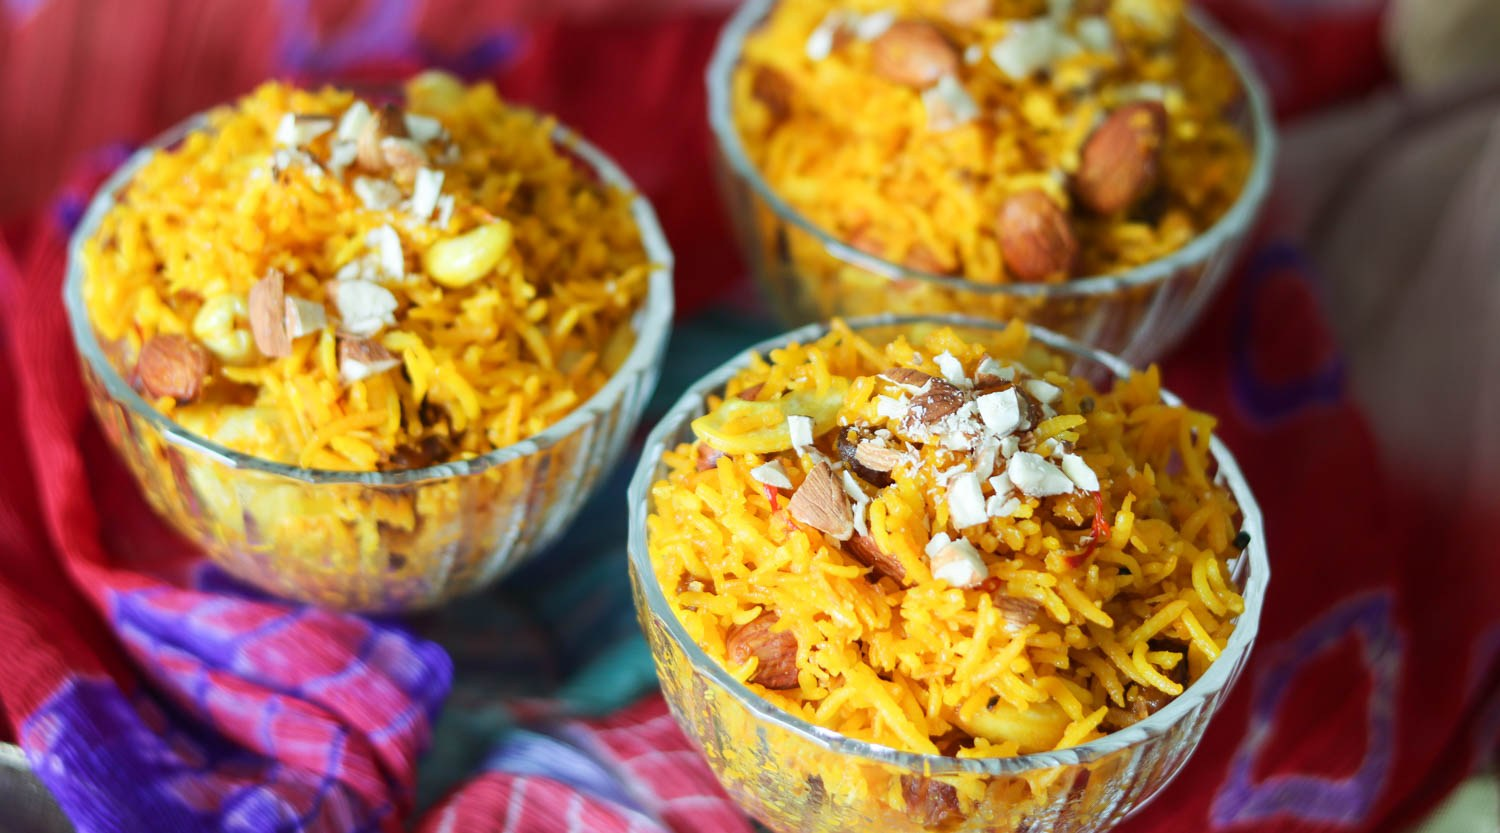 Festive holiday dishes from around the world